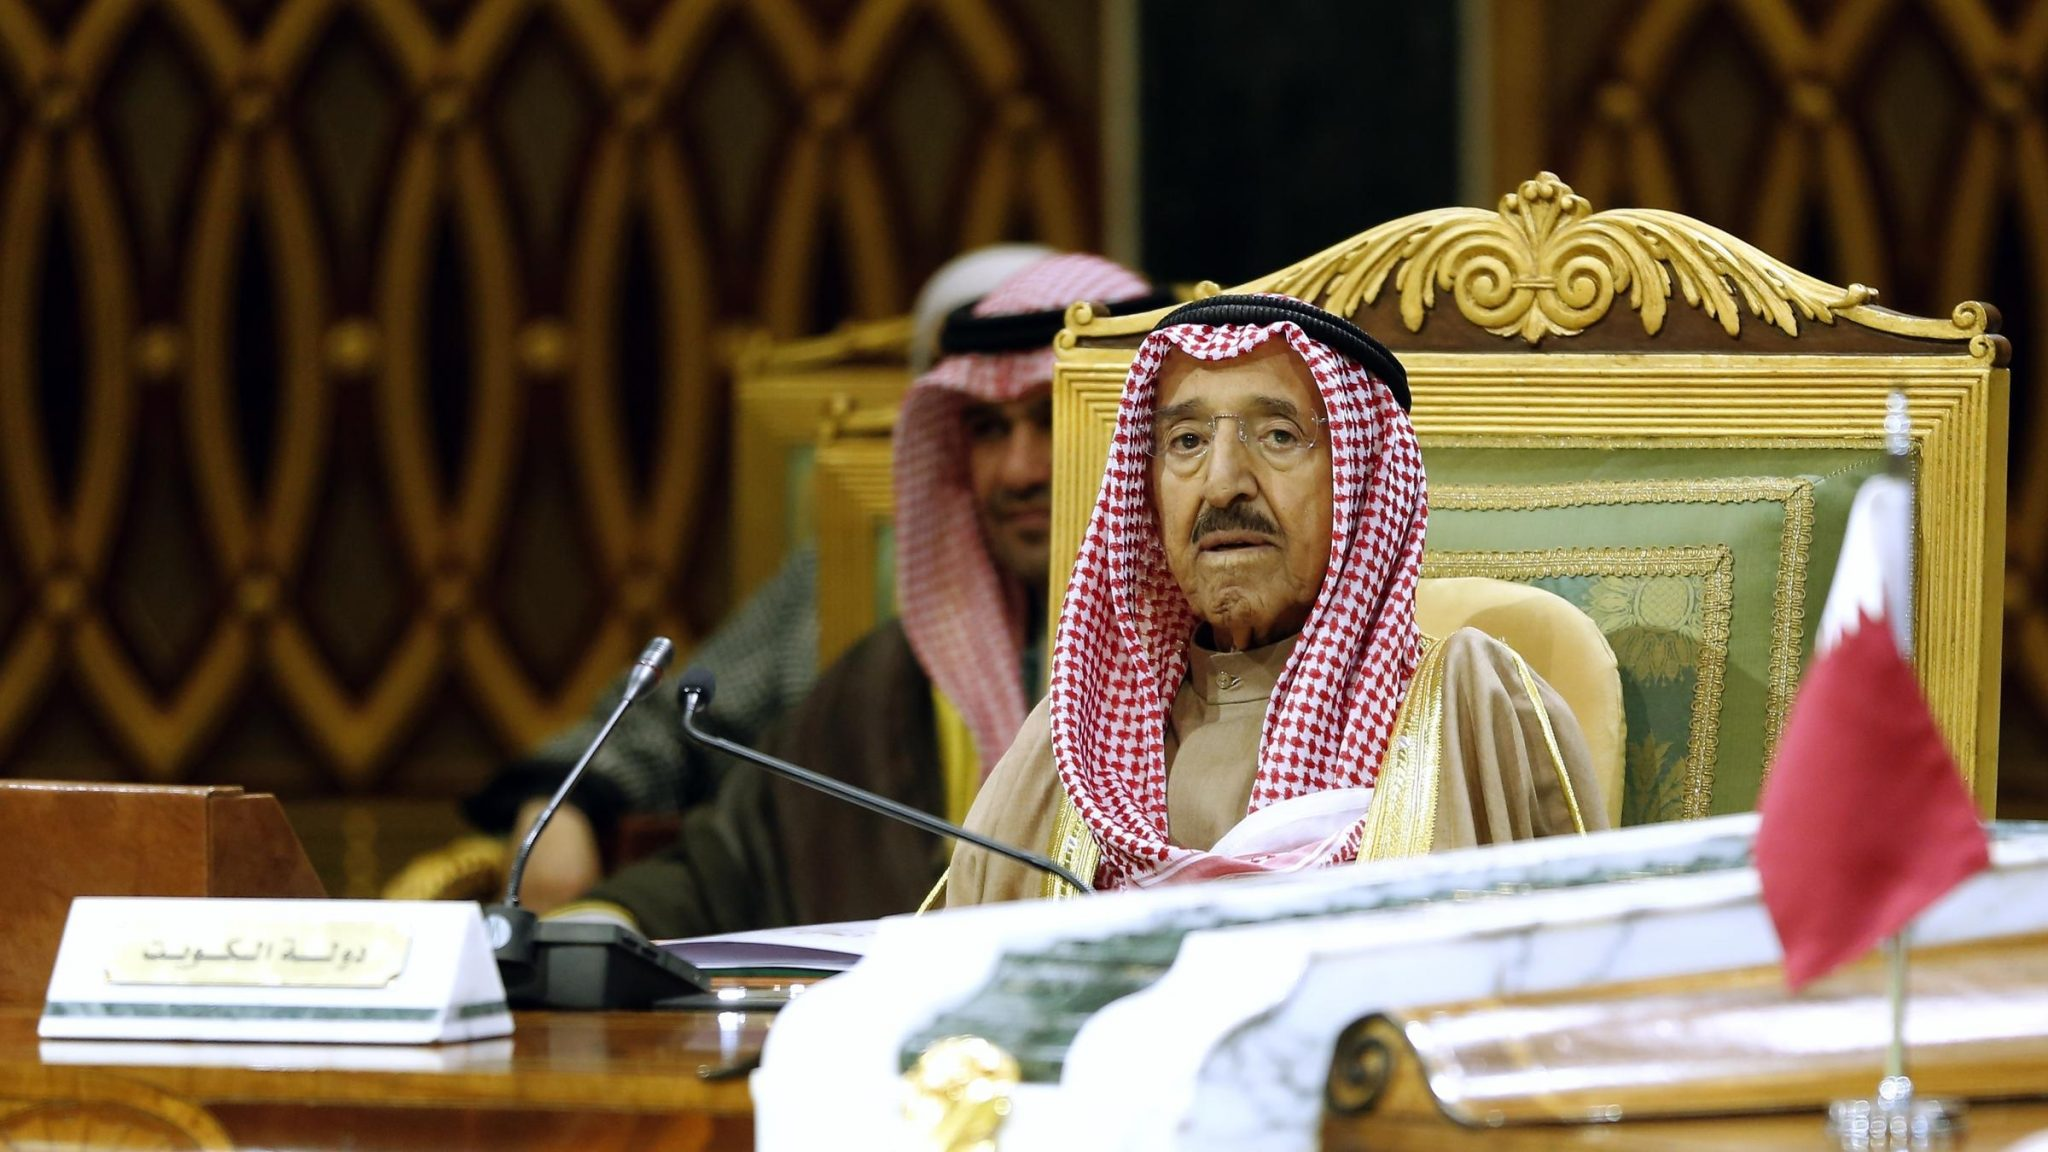 FILE - In this Tuesday, Dec. 10, 2019 file photo, Kuwait's Emir Sheikh Sabah Al Ahmad Al Sabah attends the 40th Gulf Cooperation Council Summit in Riyadh, Saudi Arabia. Kuwait state television said Tuesday, Sept. 29, 2020, the country's 91-year-old ruler, Sheikh Sabah Al Ahmad Al Sabah, had died.(AP Photo/Amr Nabil, File)